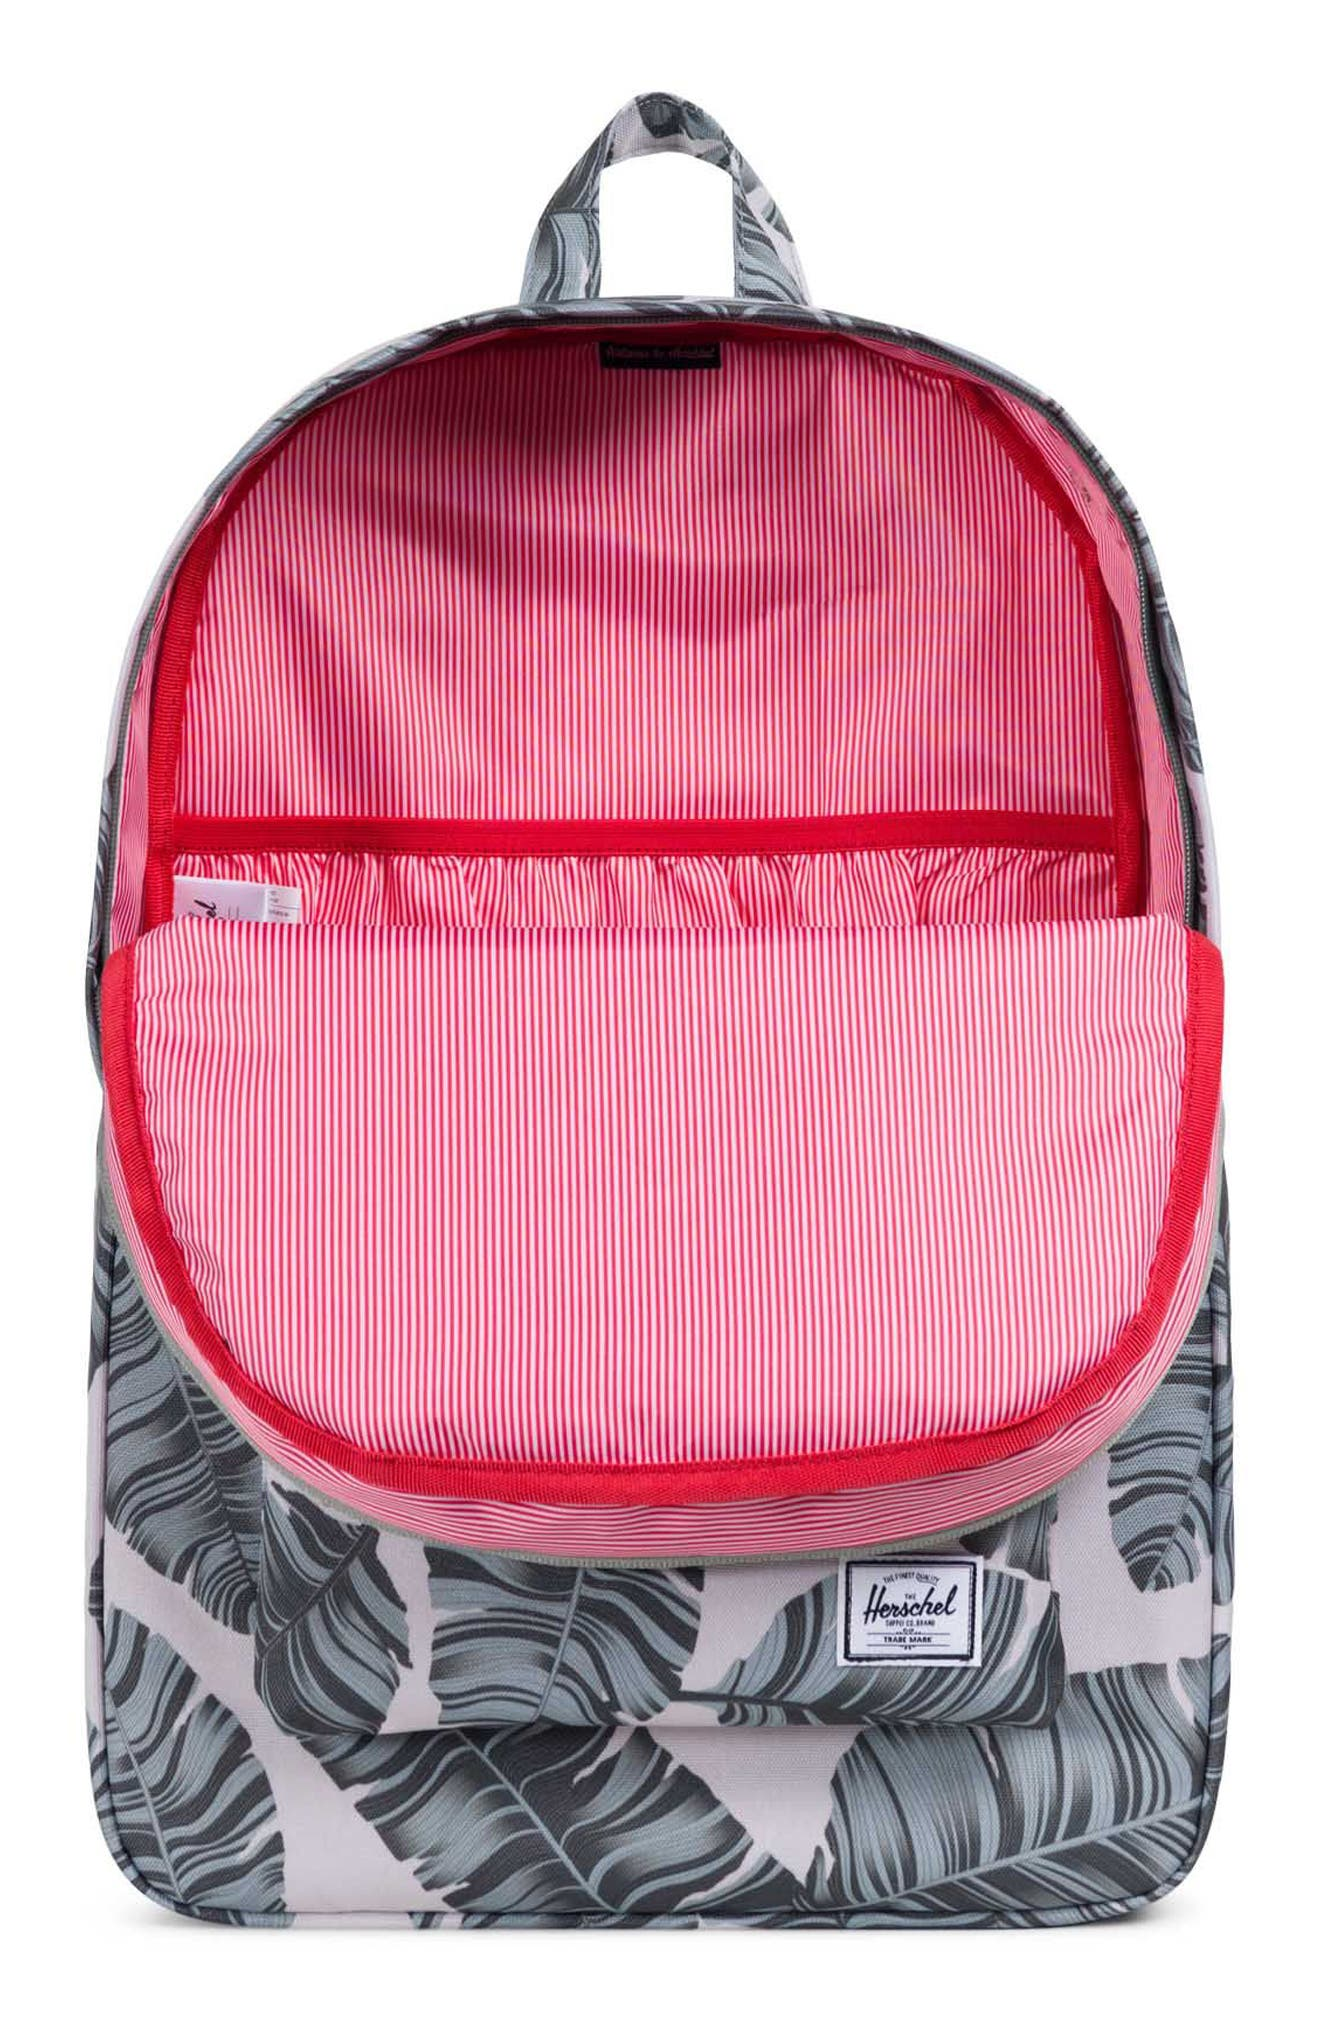 Heritage Backpack,                             Alternate thumbnail 3, color,                             Silver Birch Palm/ Tan